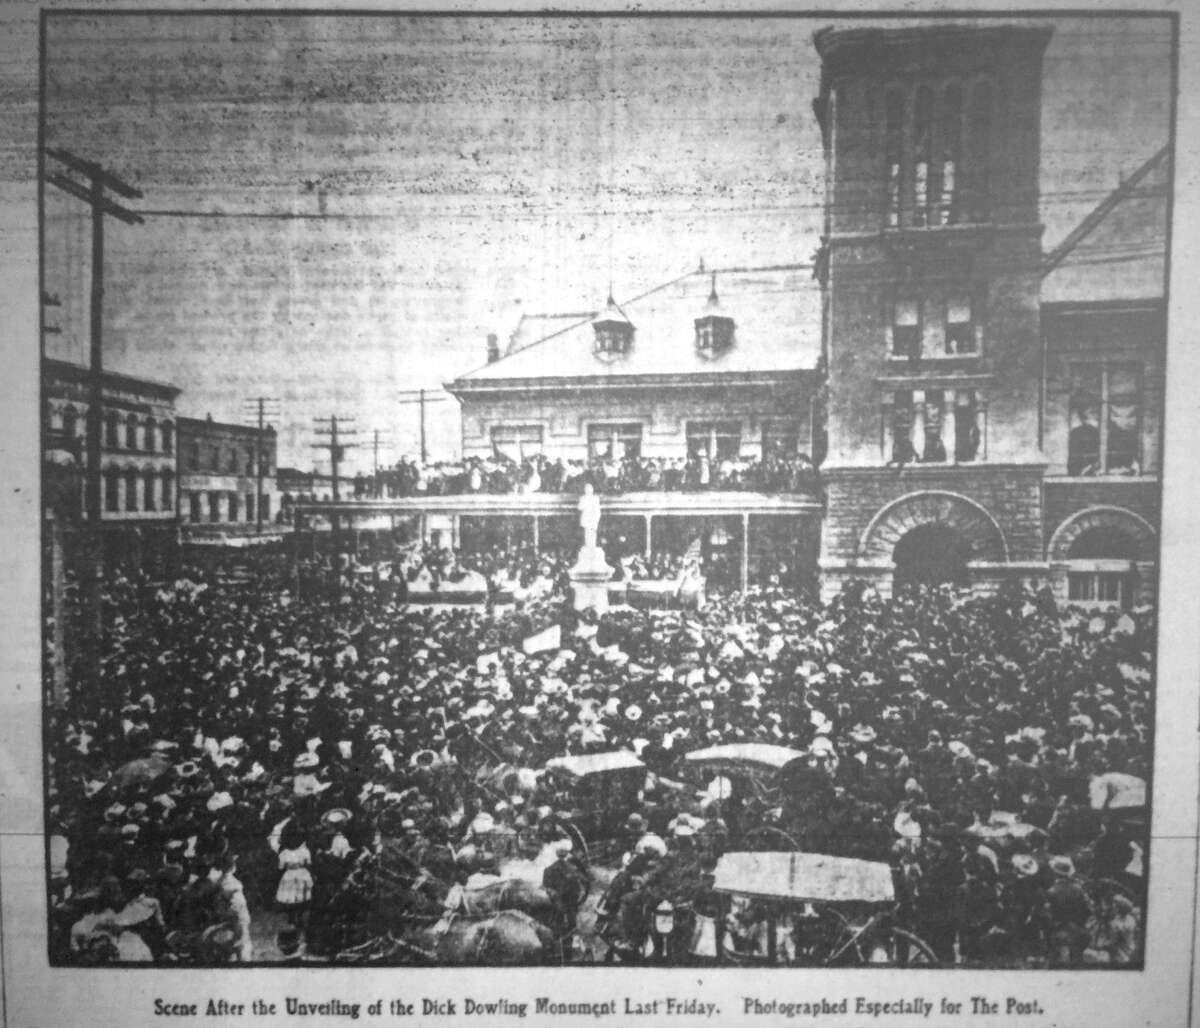 Unveiling of Dick Dowling statue at Market Square outside City Hall, March 17, 1905.